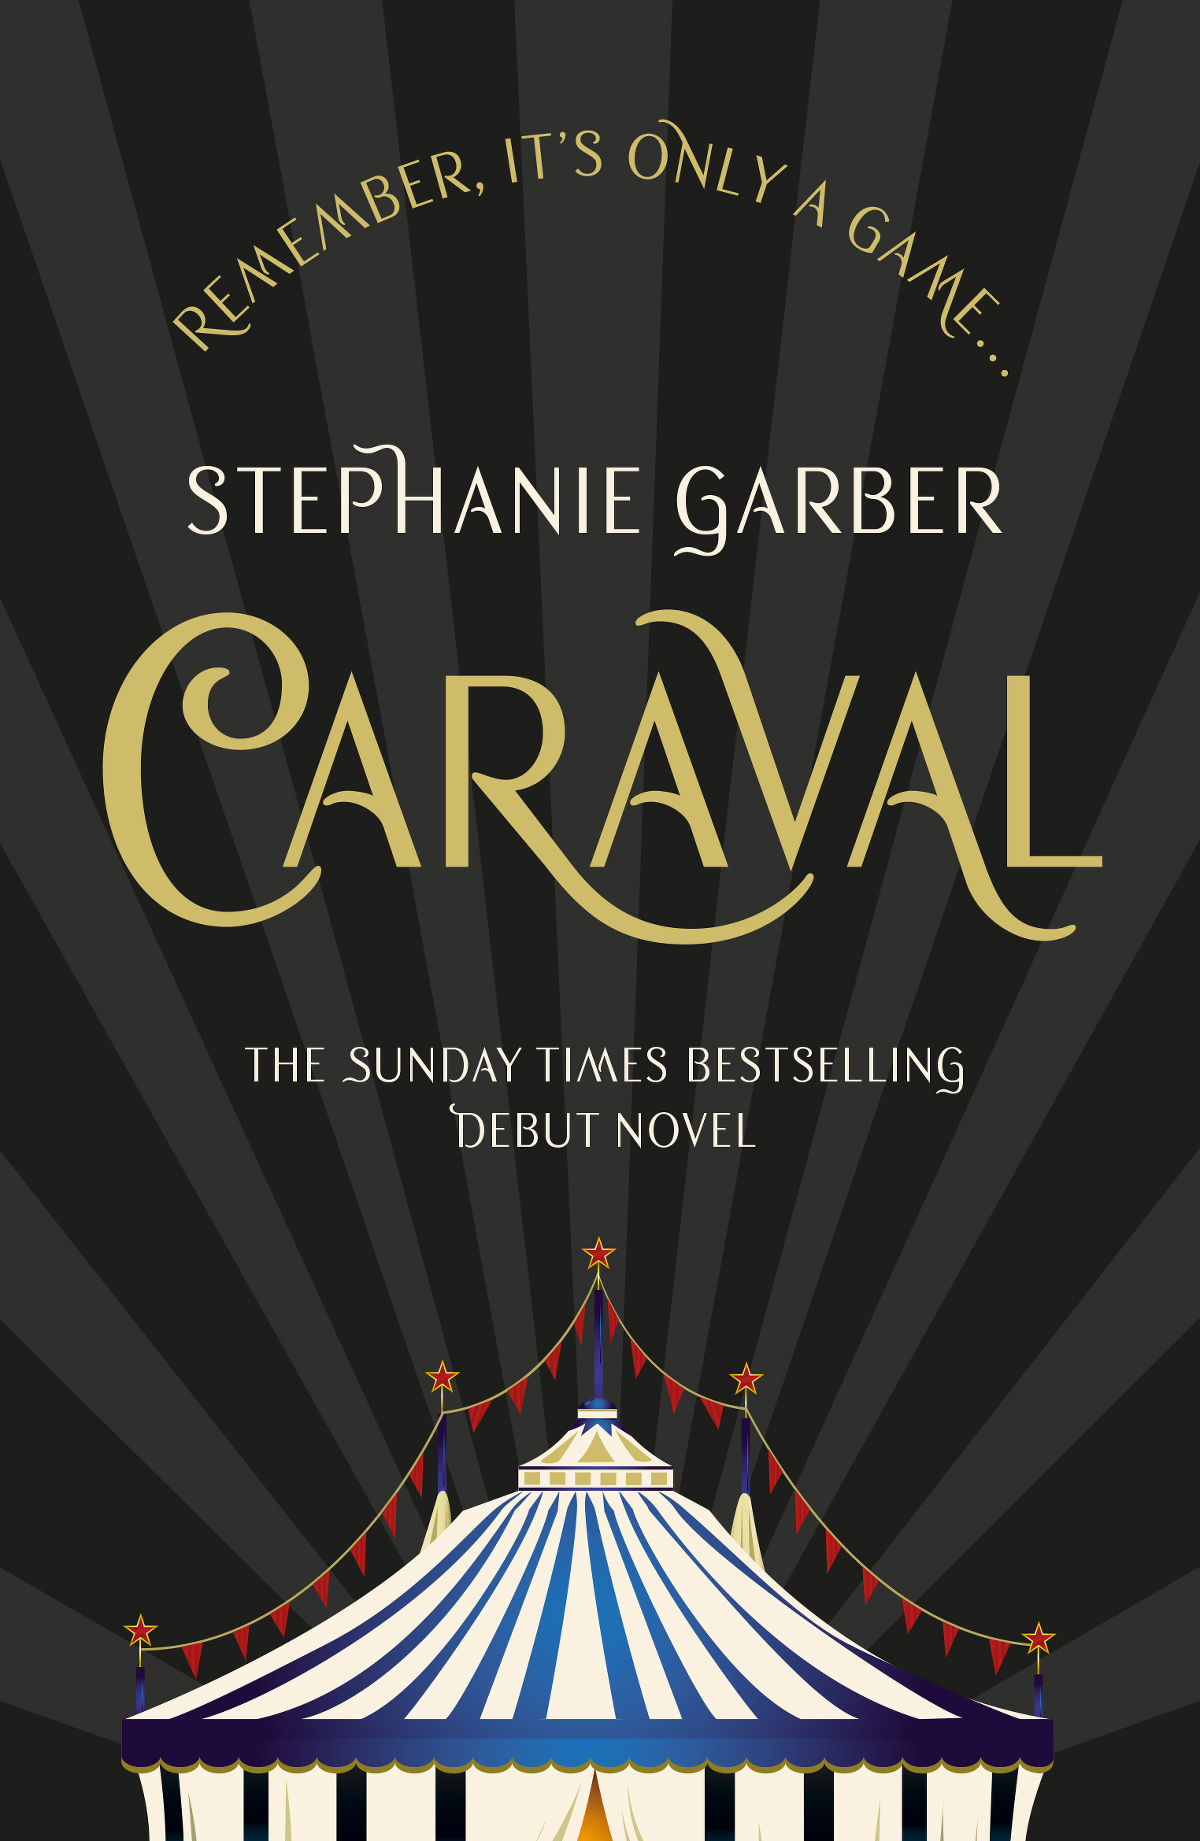 the uk paperback cover of caraval is here   u00bb stephanie garber